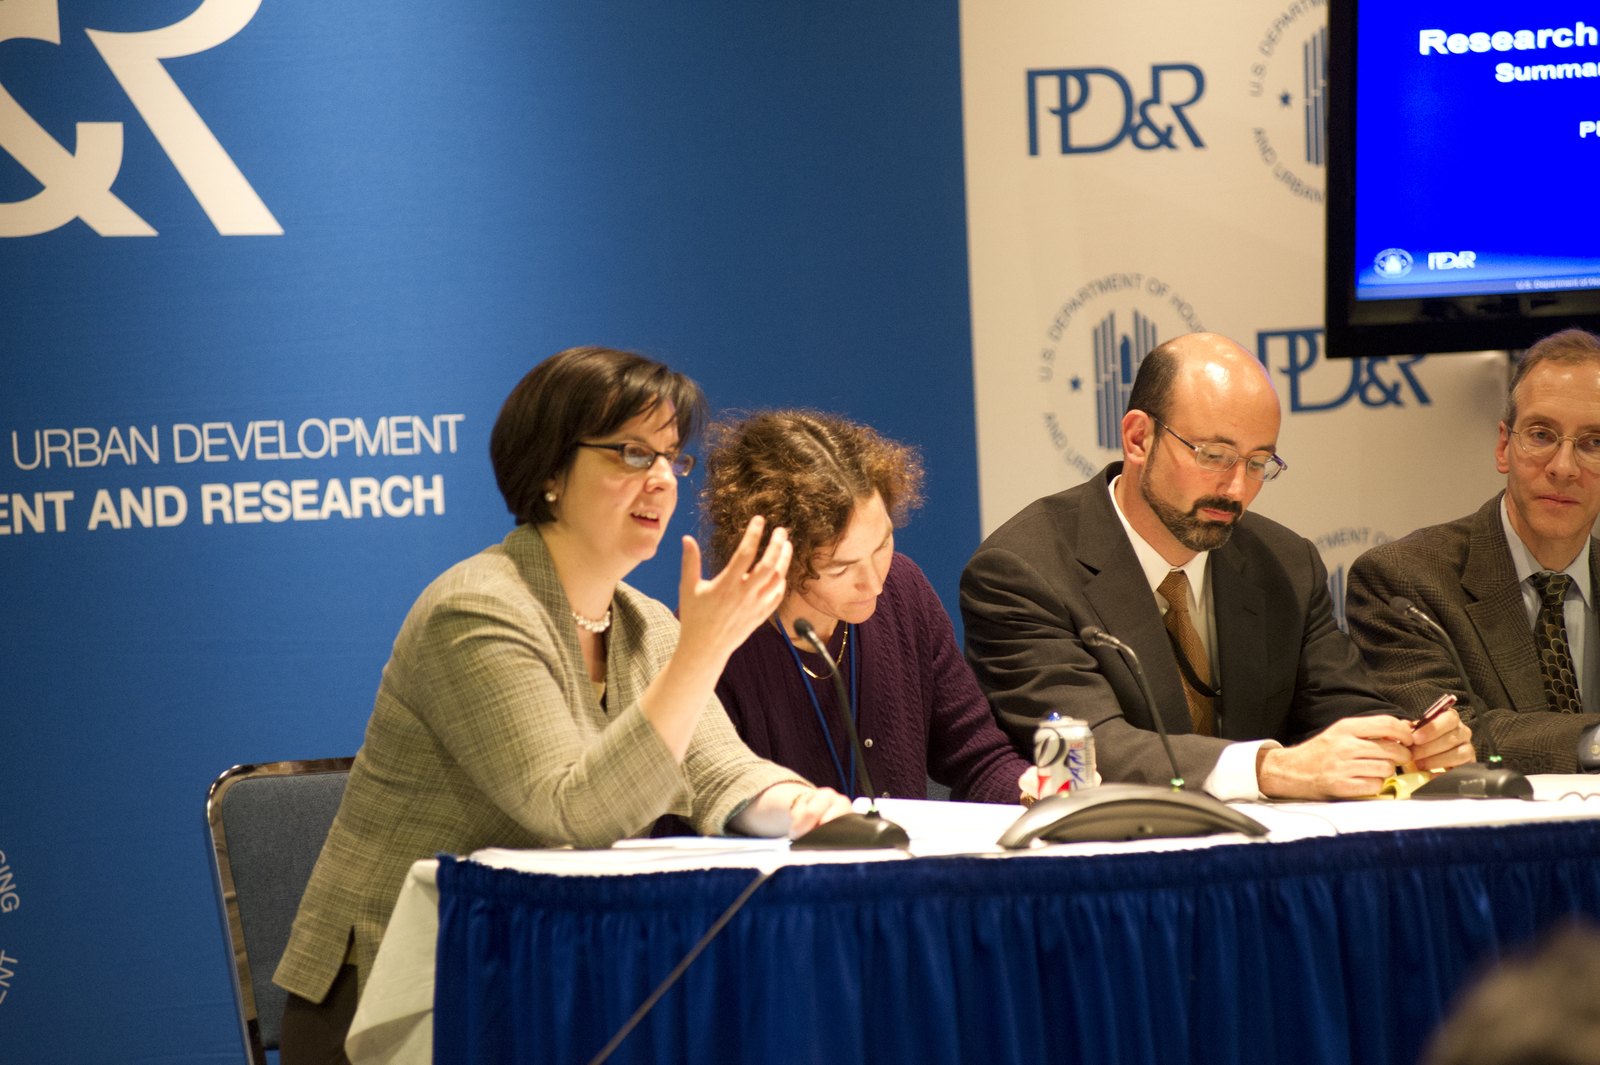 Policy Development and Research (PDR) All Hands Meeting, [with Assistant Secretary for PDR, Raphael Bostic, among the speakers]